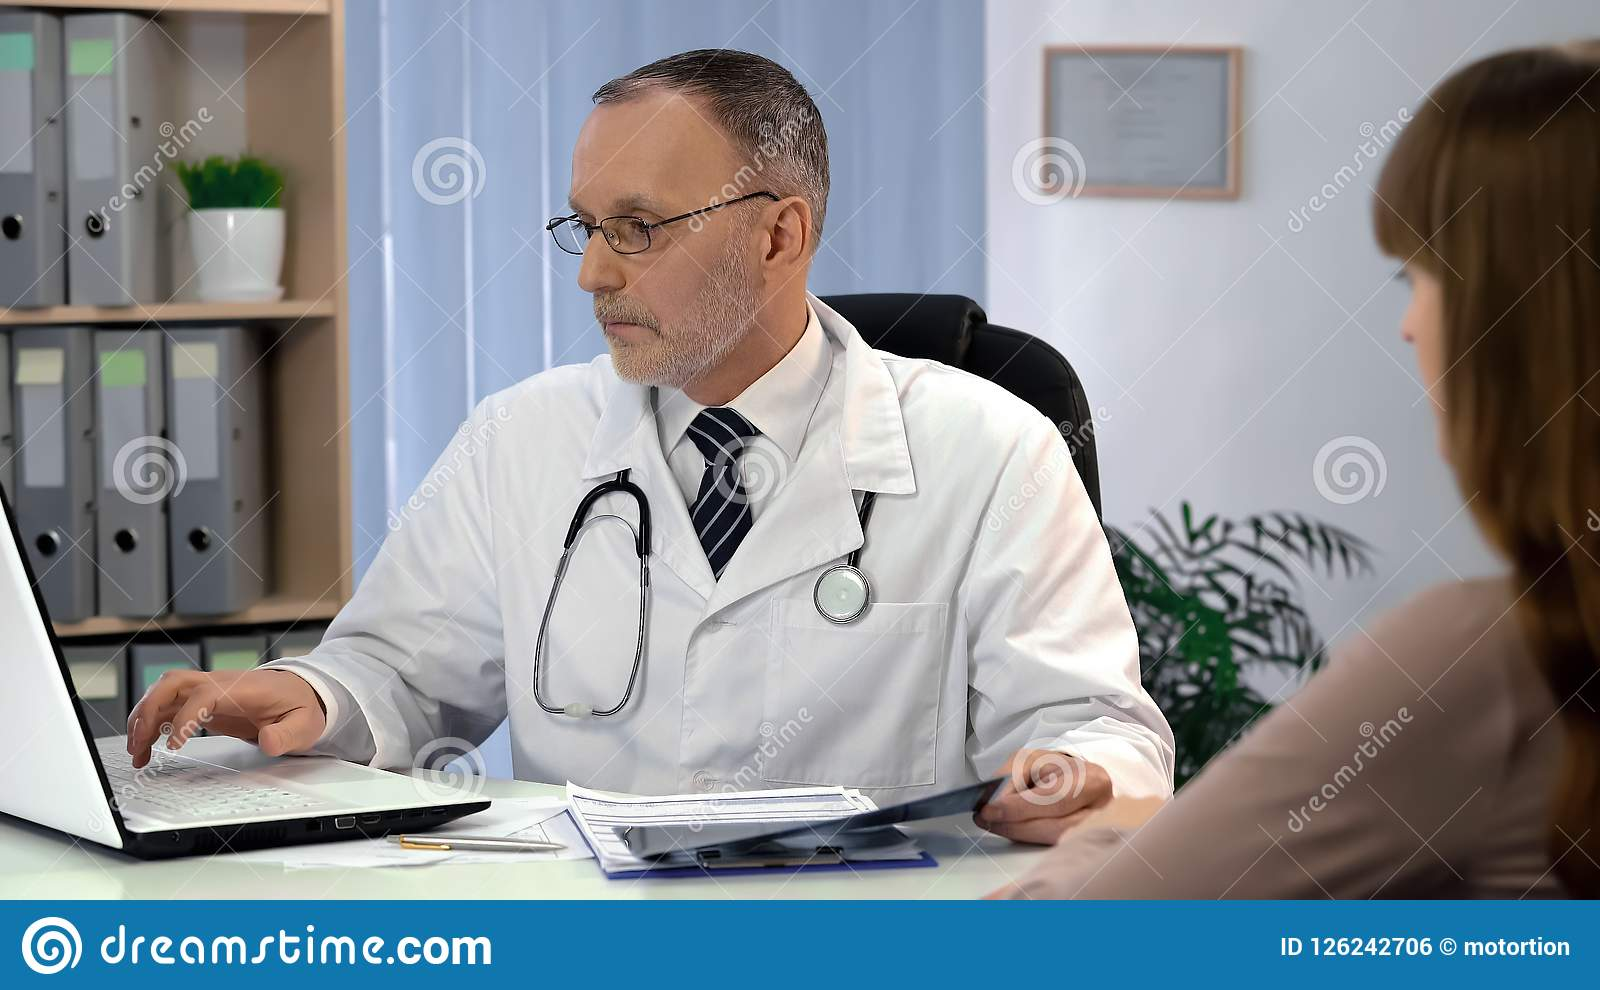 Doctor checking analysis on laptop, holding x-ray, digital devices replace paper